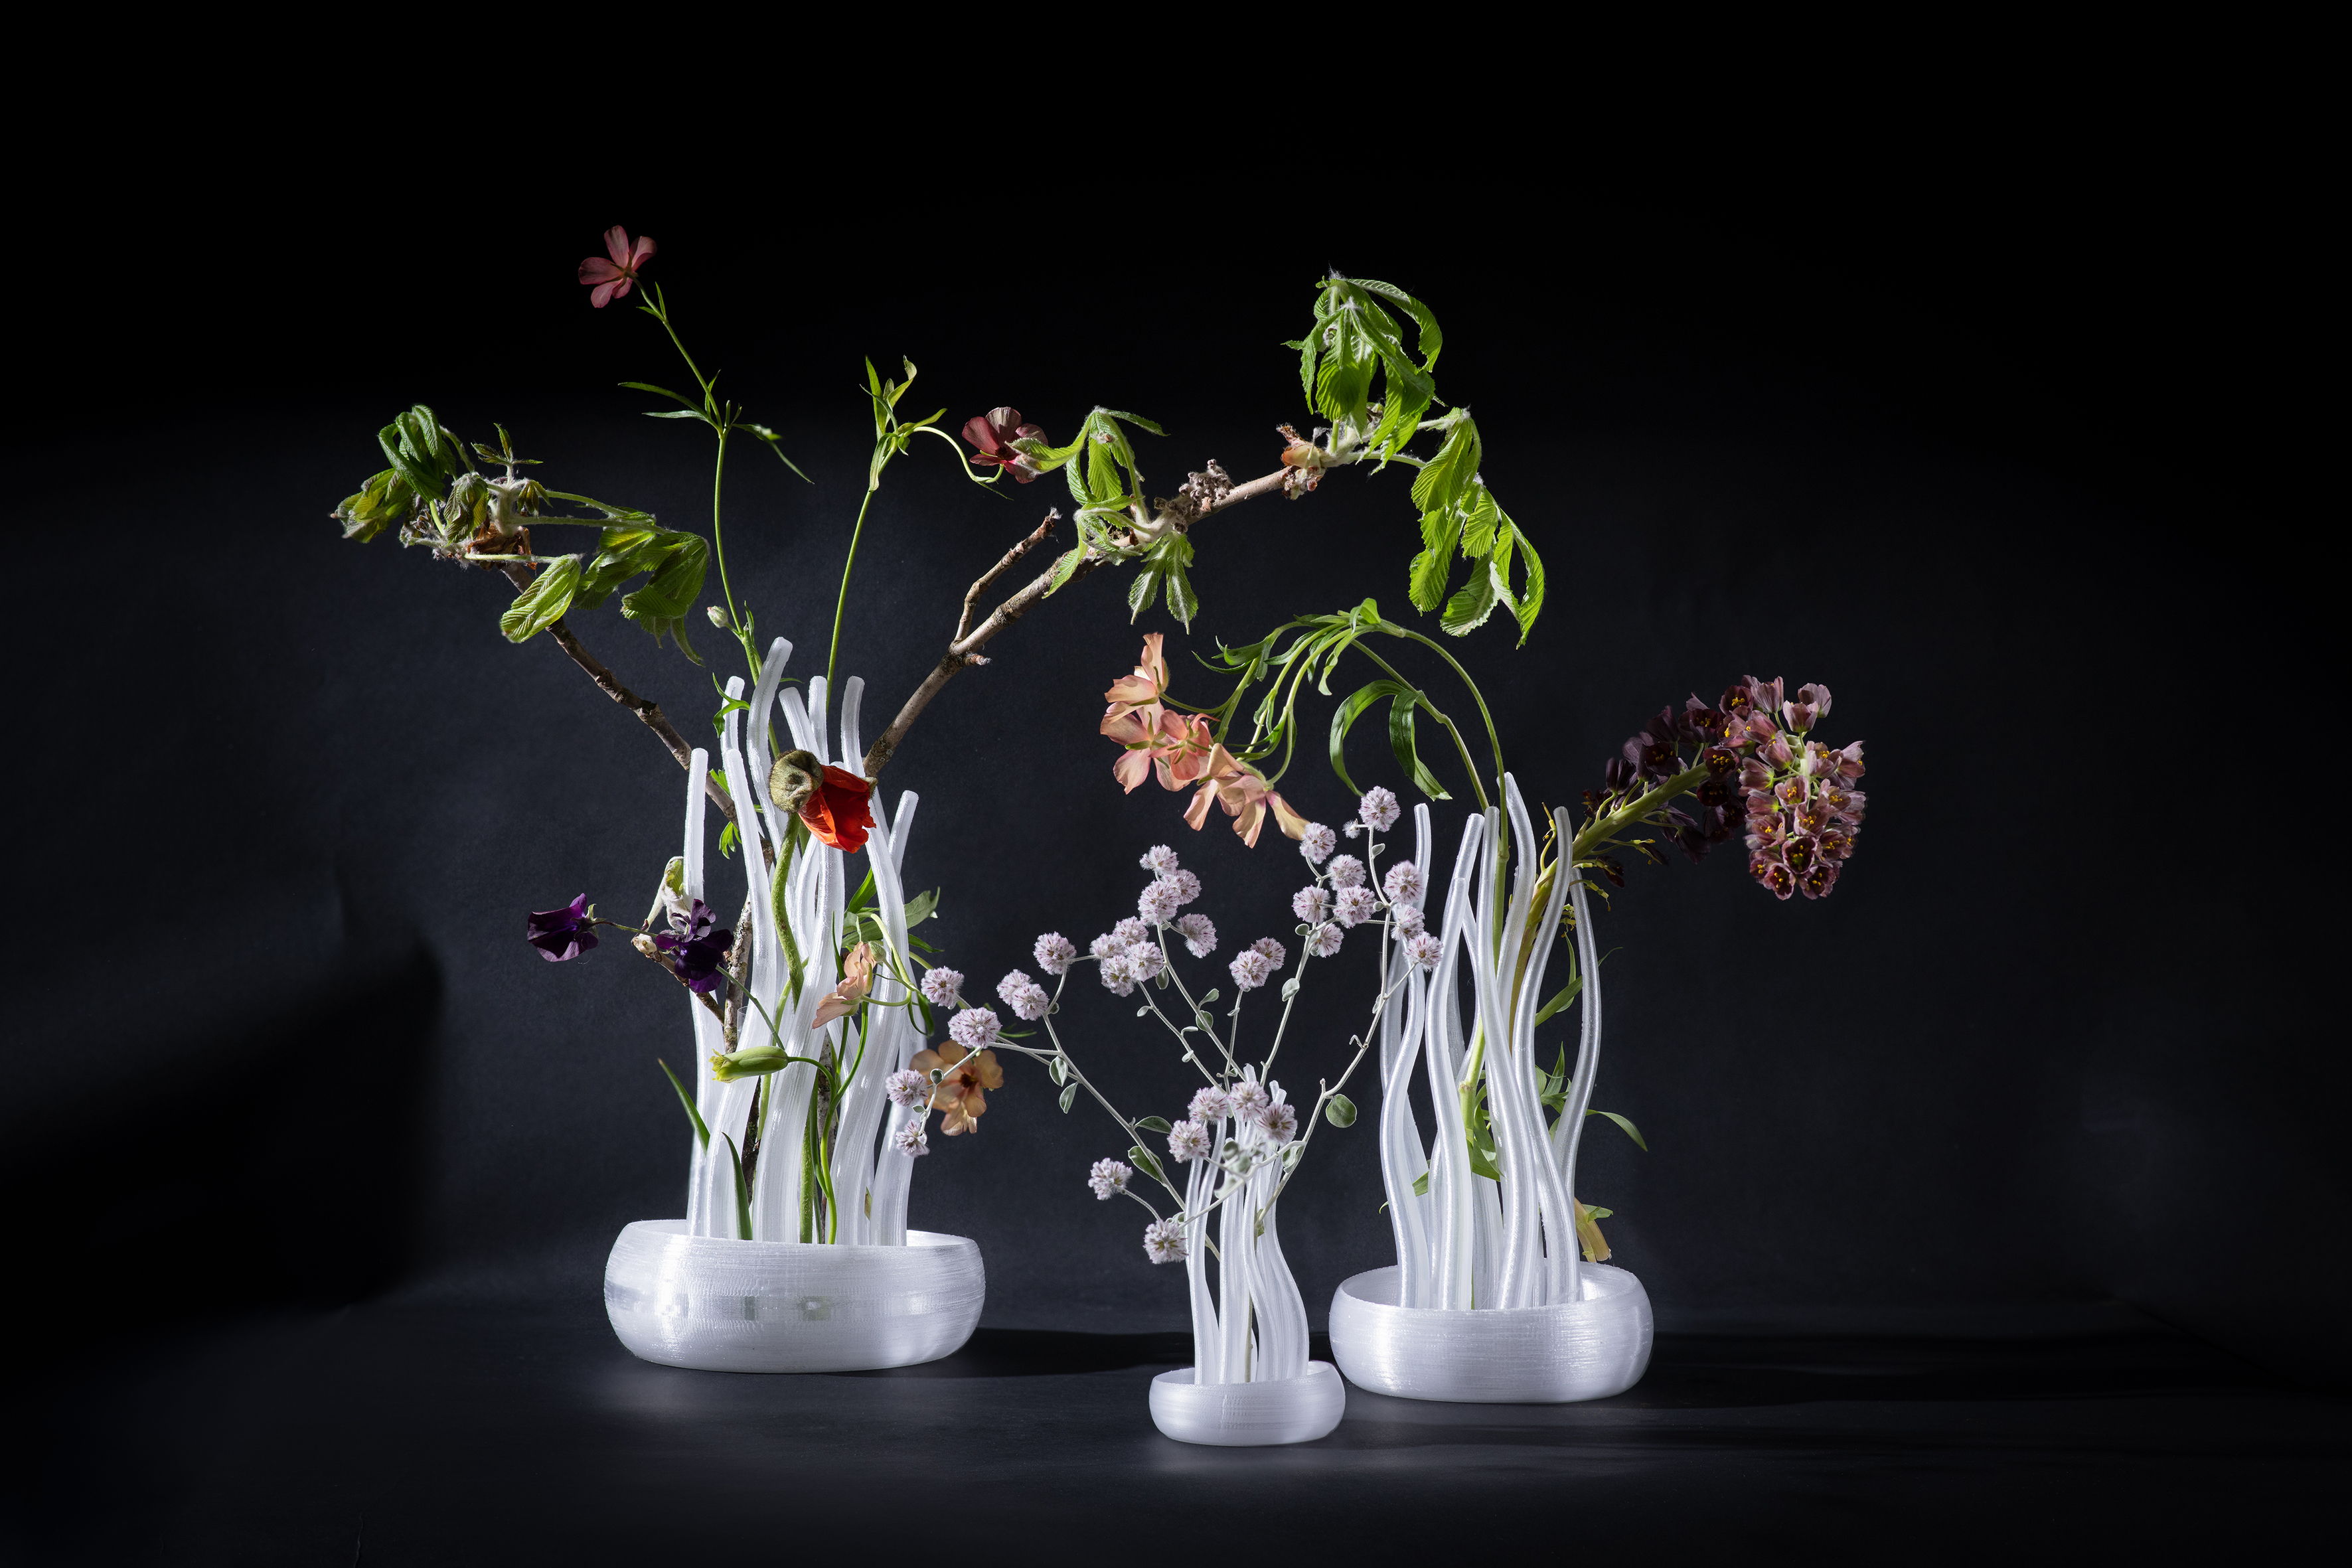 1000 Vases at Paris Design Week 2019